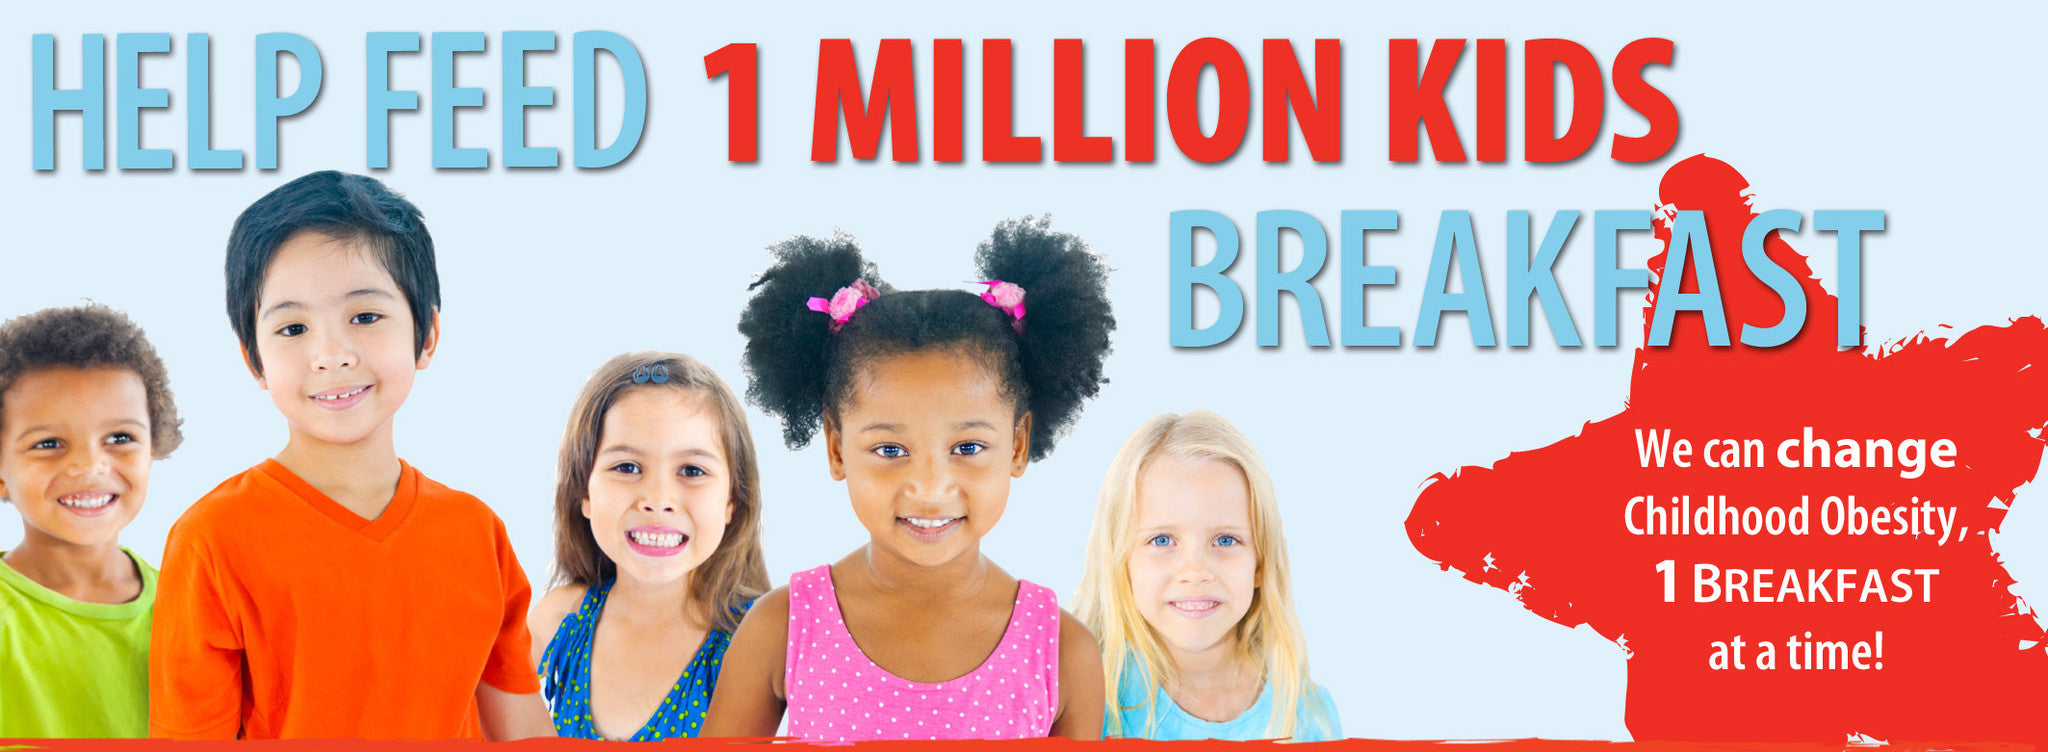 Help Feed 1 Million Kids Breakfast